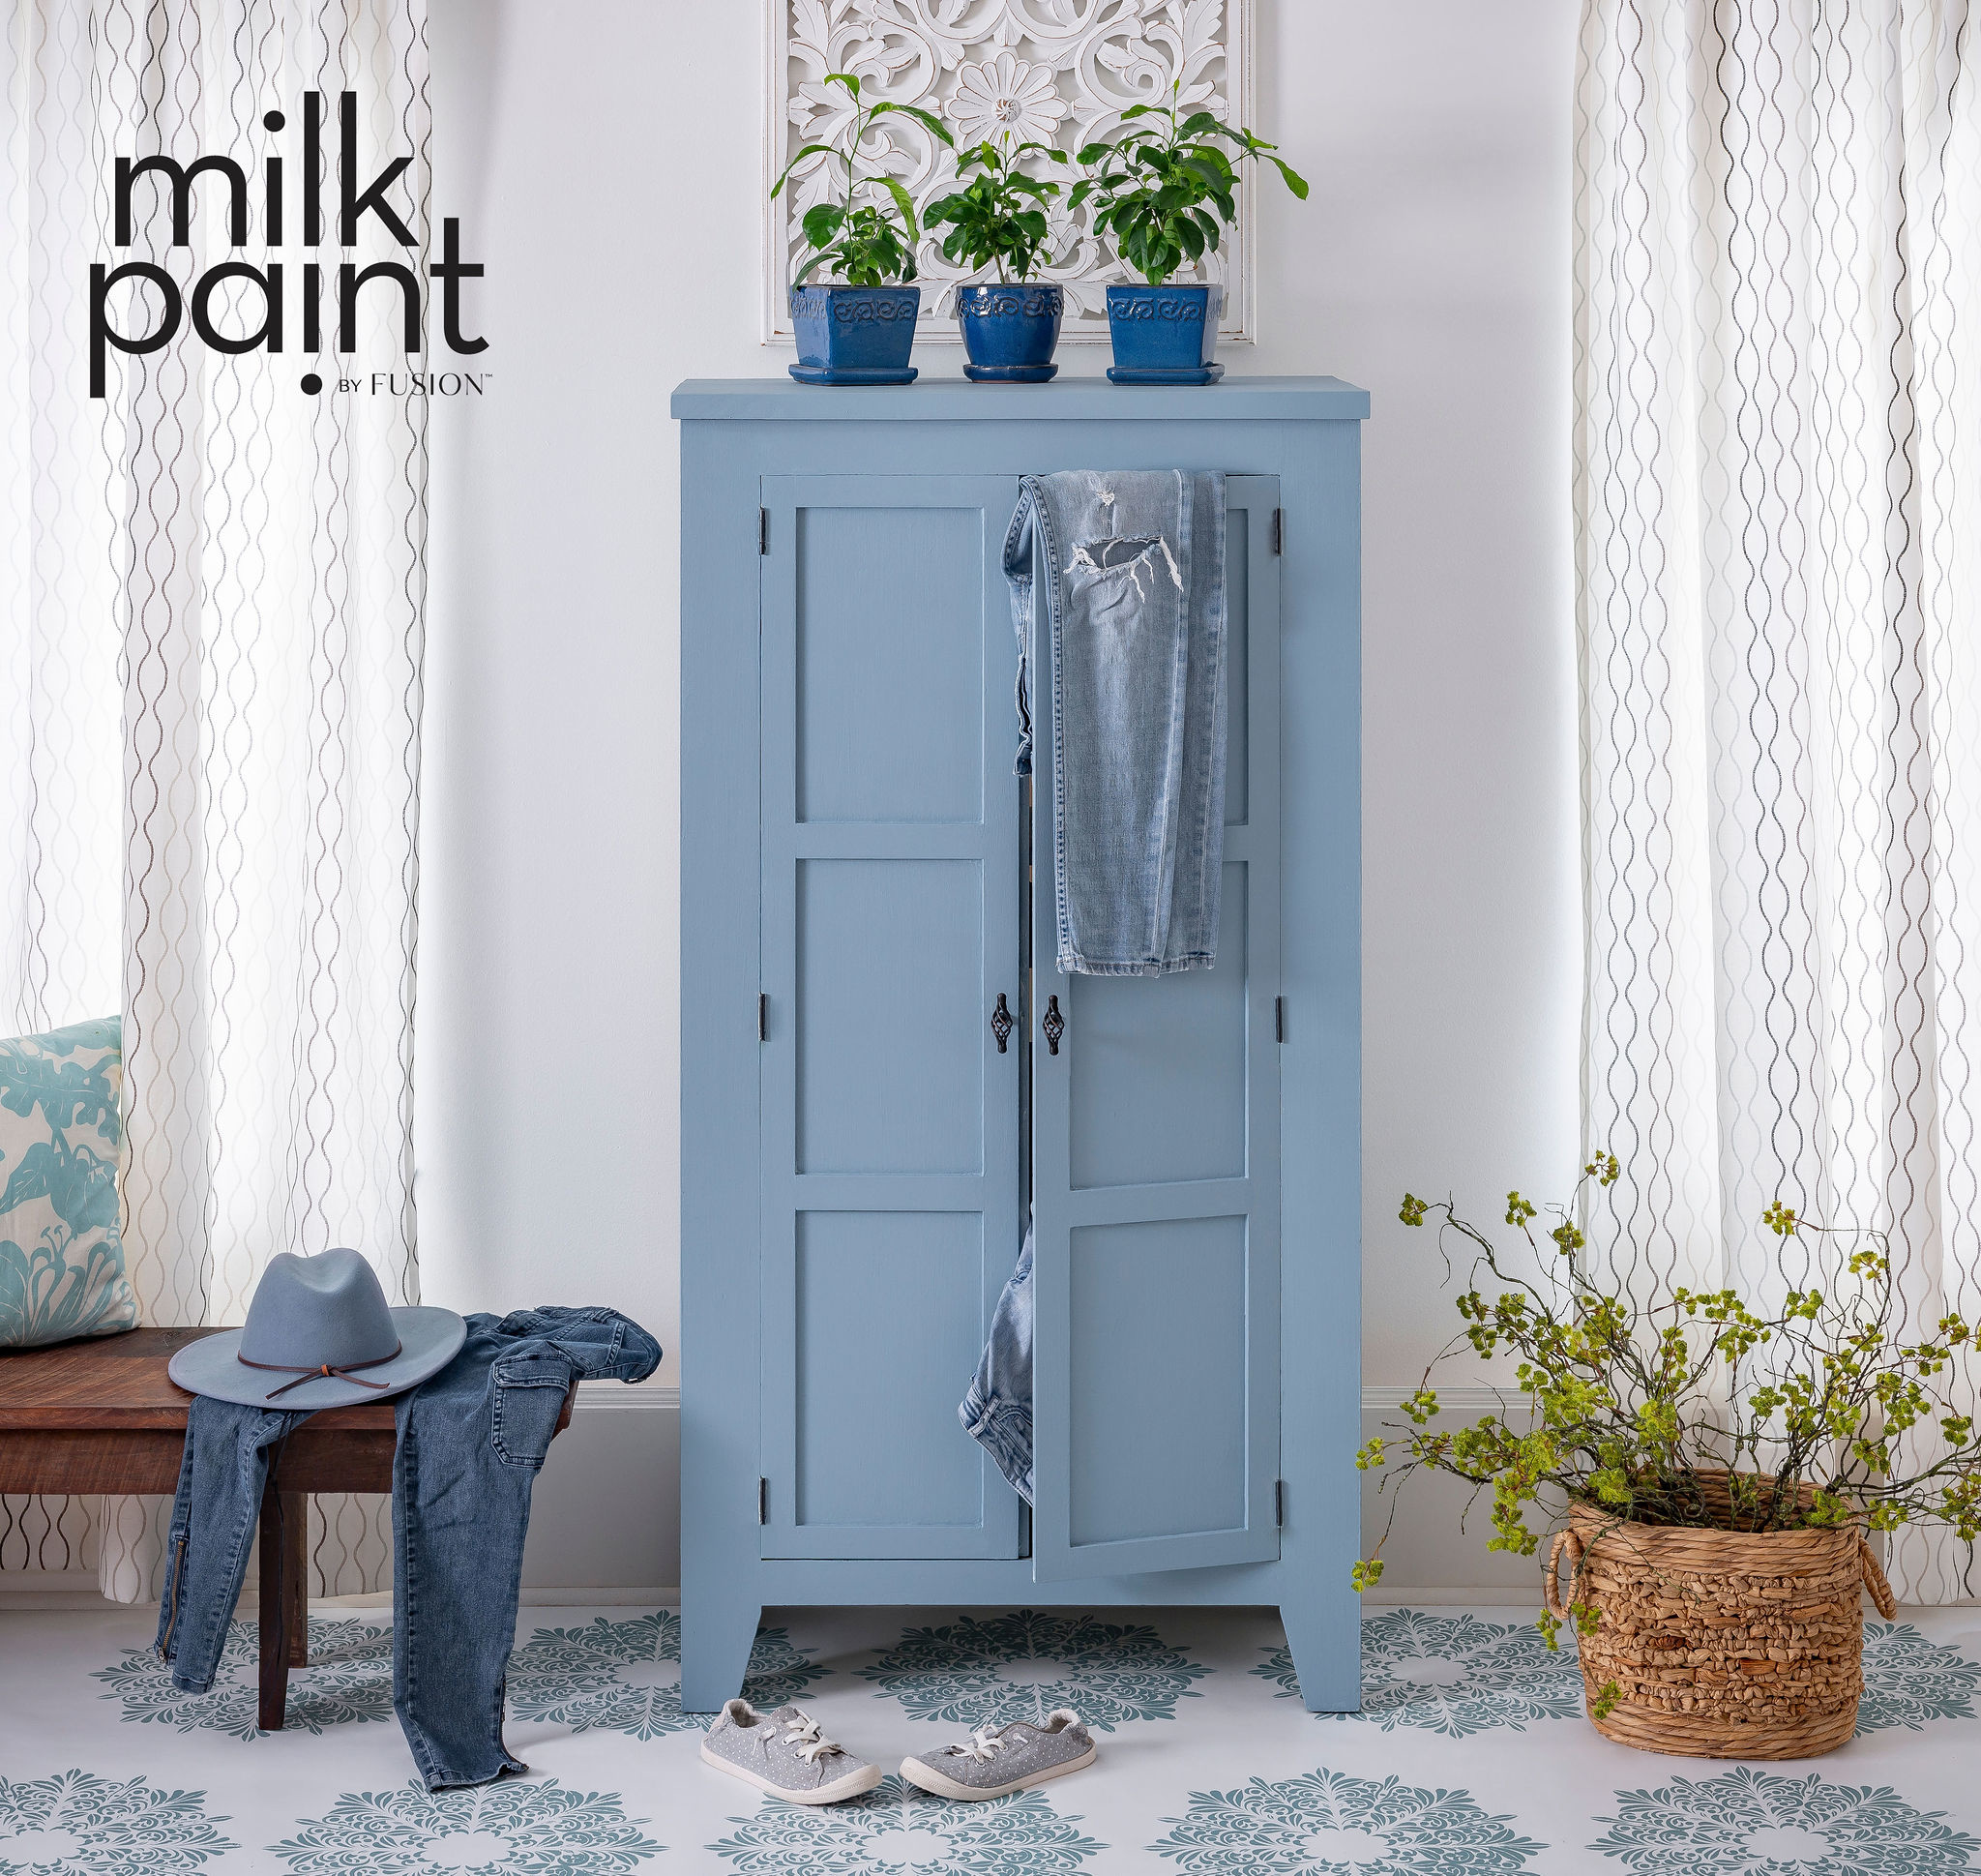 Fusion Mineral Paint Fusion - Milk Paint - Skinny Jeans - 330gr